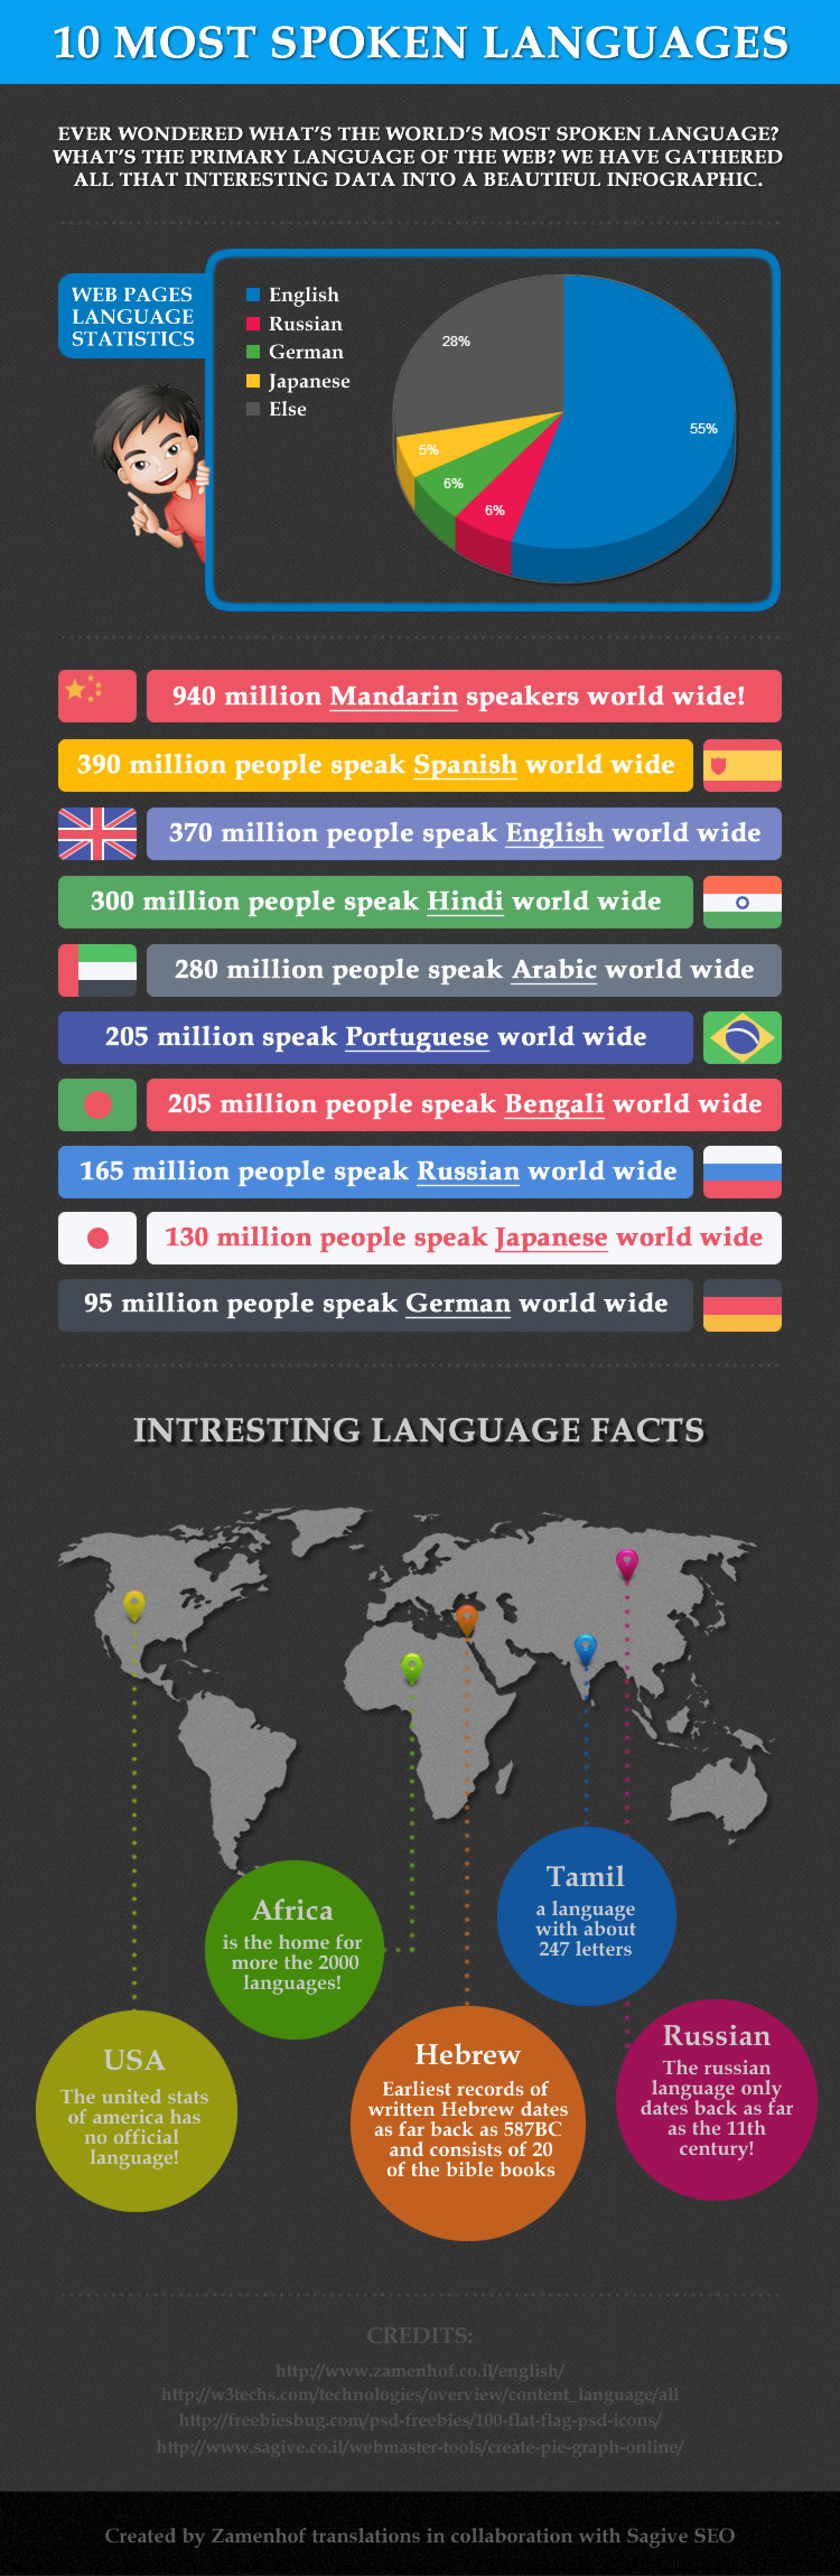 Most Spoken Languages Visually - Top 10 speaking languages